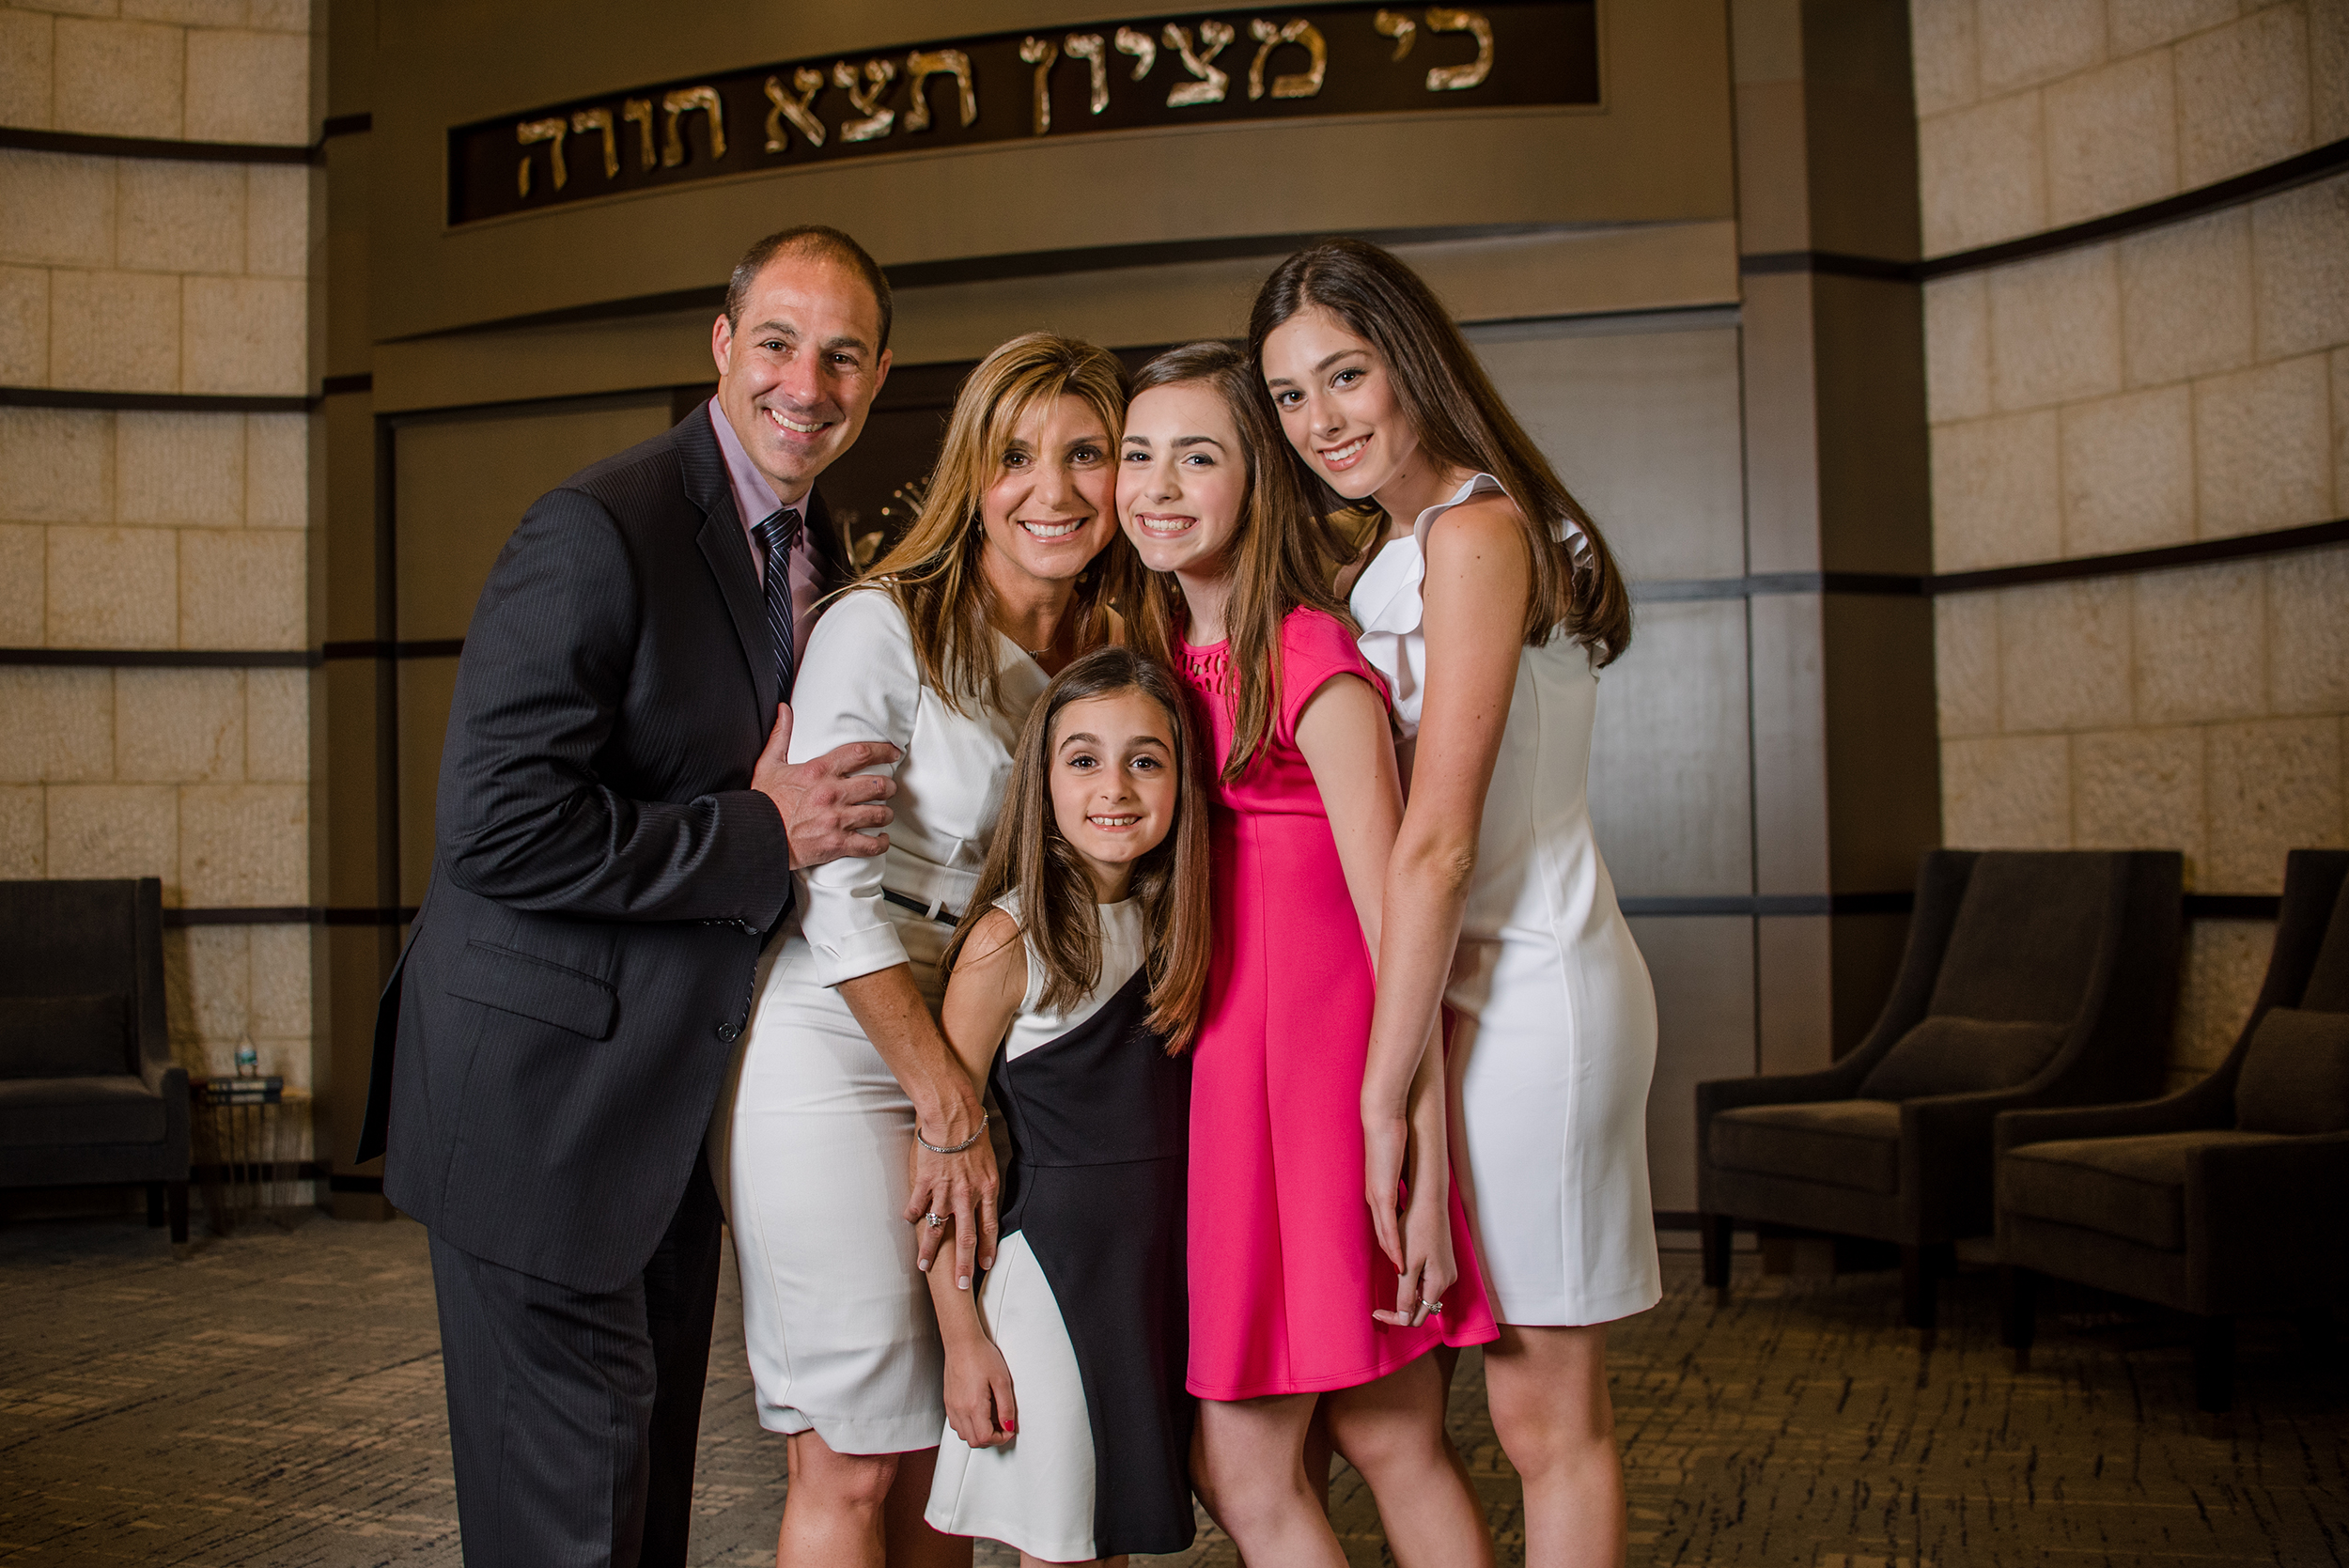 mitzvah-event-photography-south-florida-alison-frank-photography_03.jpg